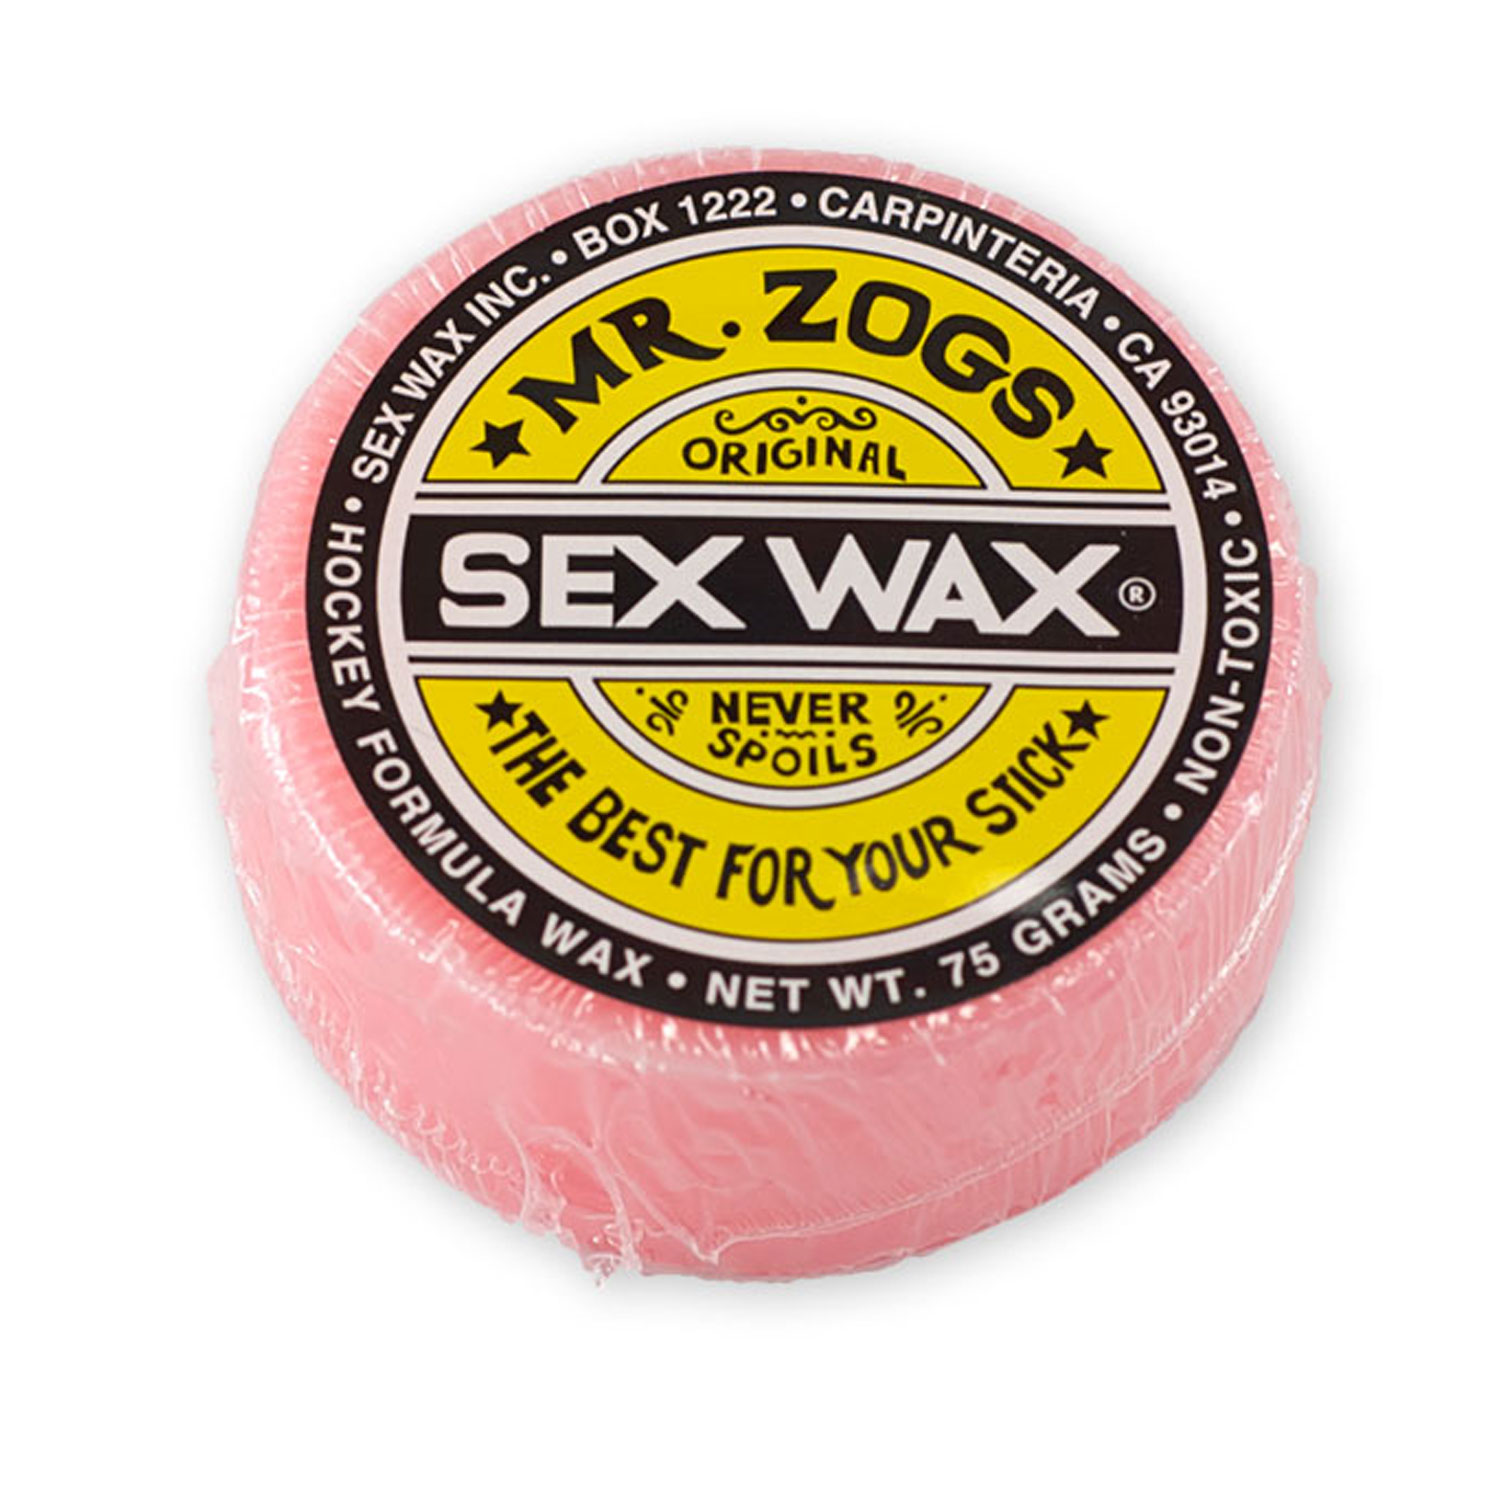 Sex Wax HOCKEY STICK WAX PINK Mr. Zogs PACK OF 2 by